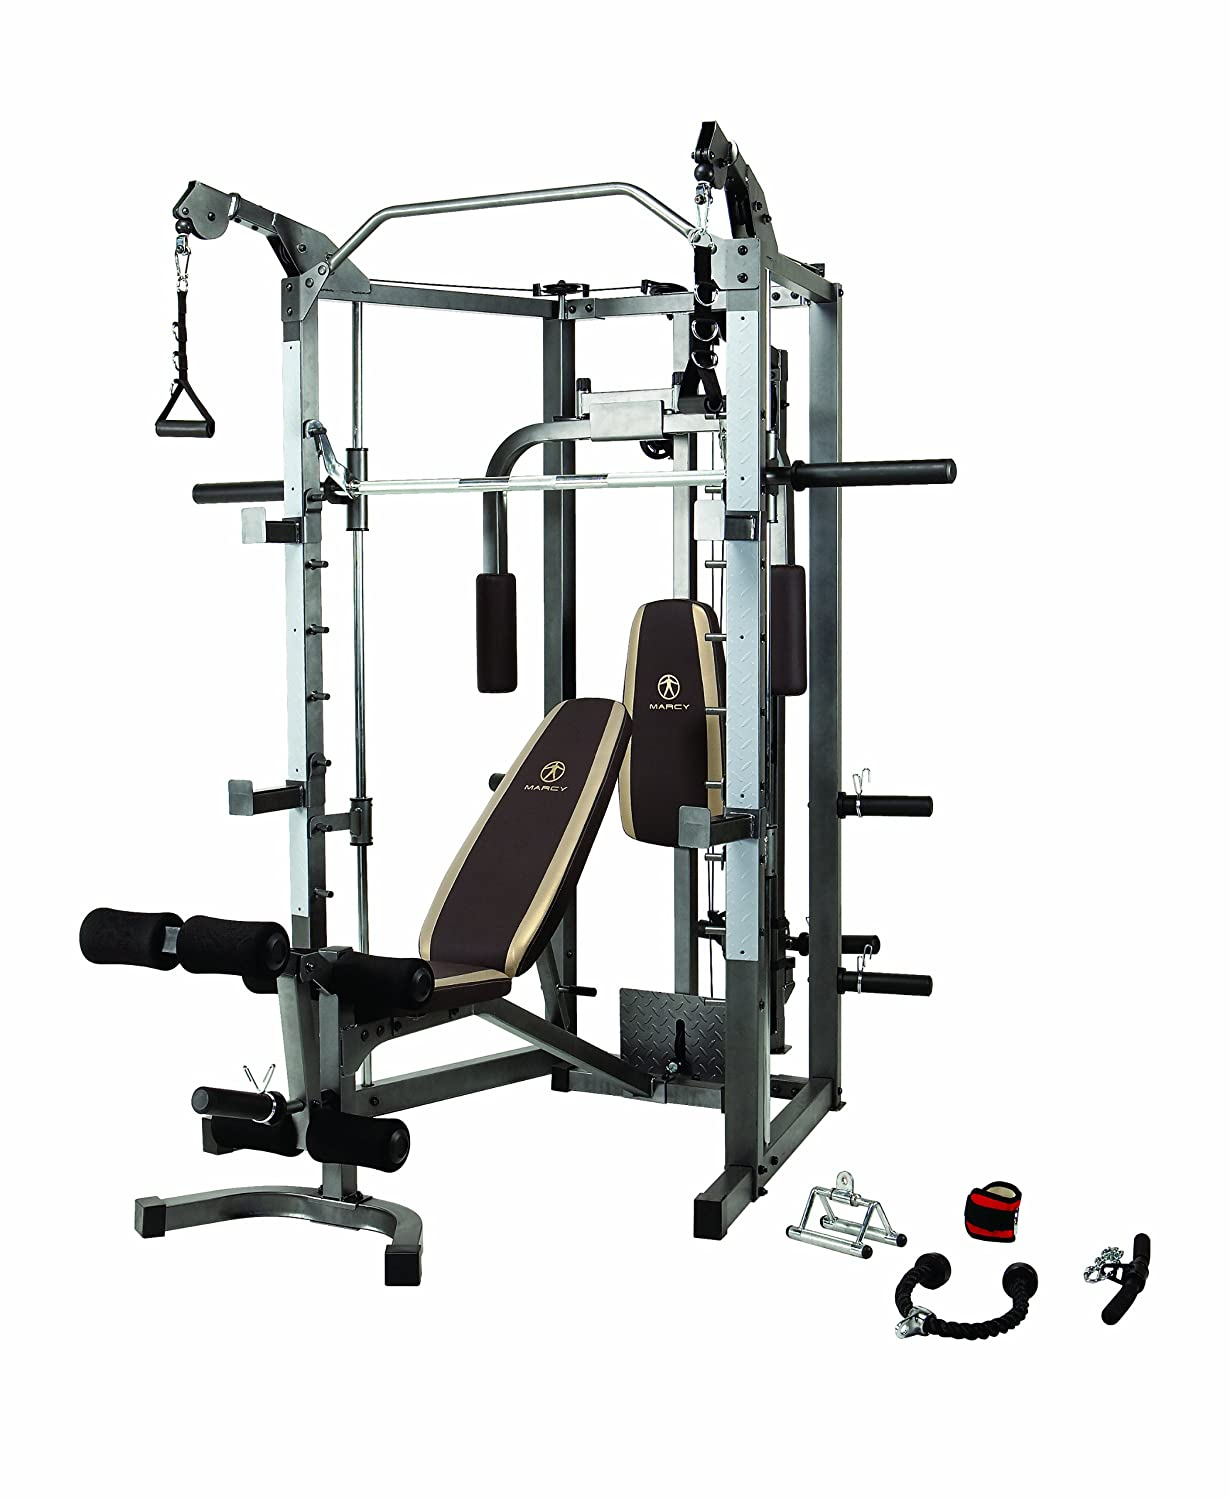 2018 Black Friday Amp Cyber Monday Fitness Equipment Deals